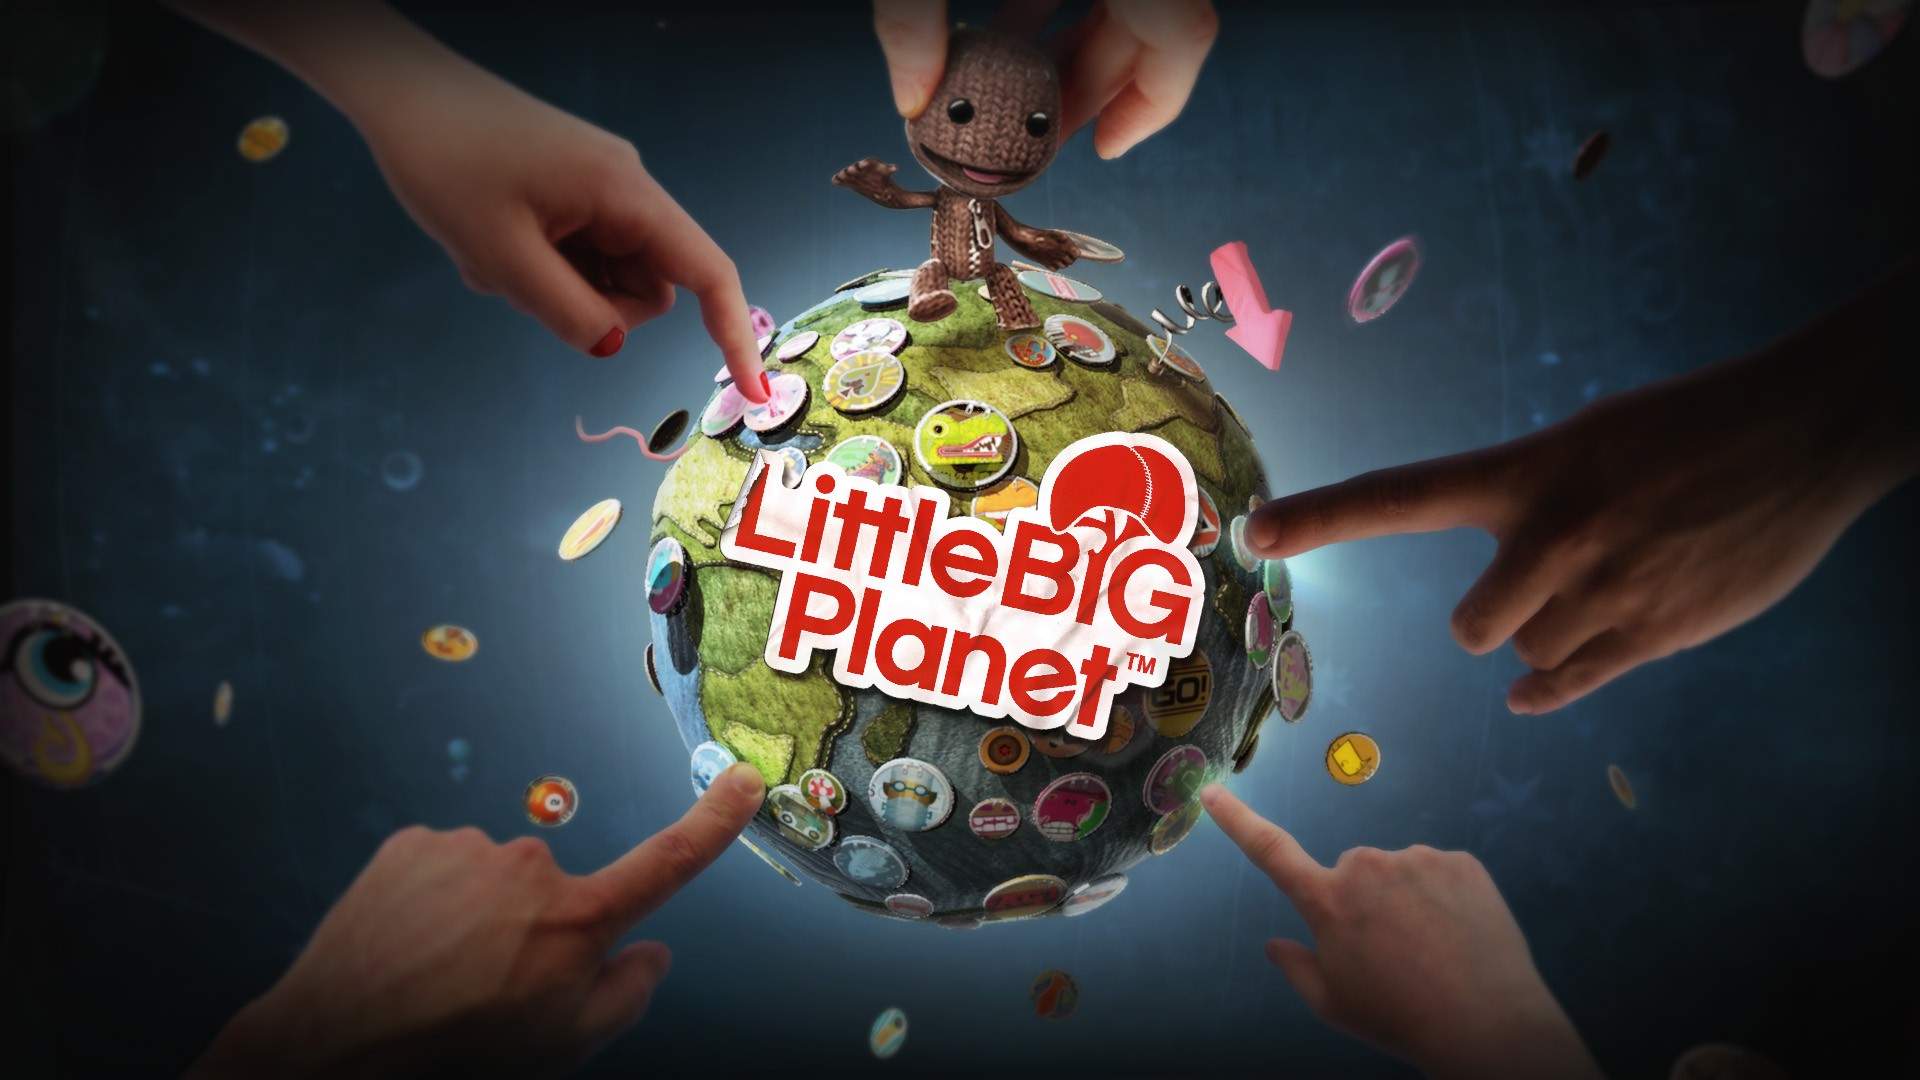 LittleBigPlanet 3 Demo Reveals The Return of Sackboy